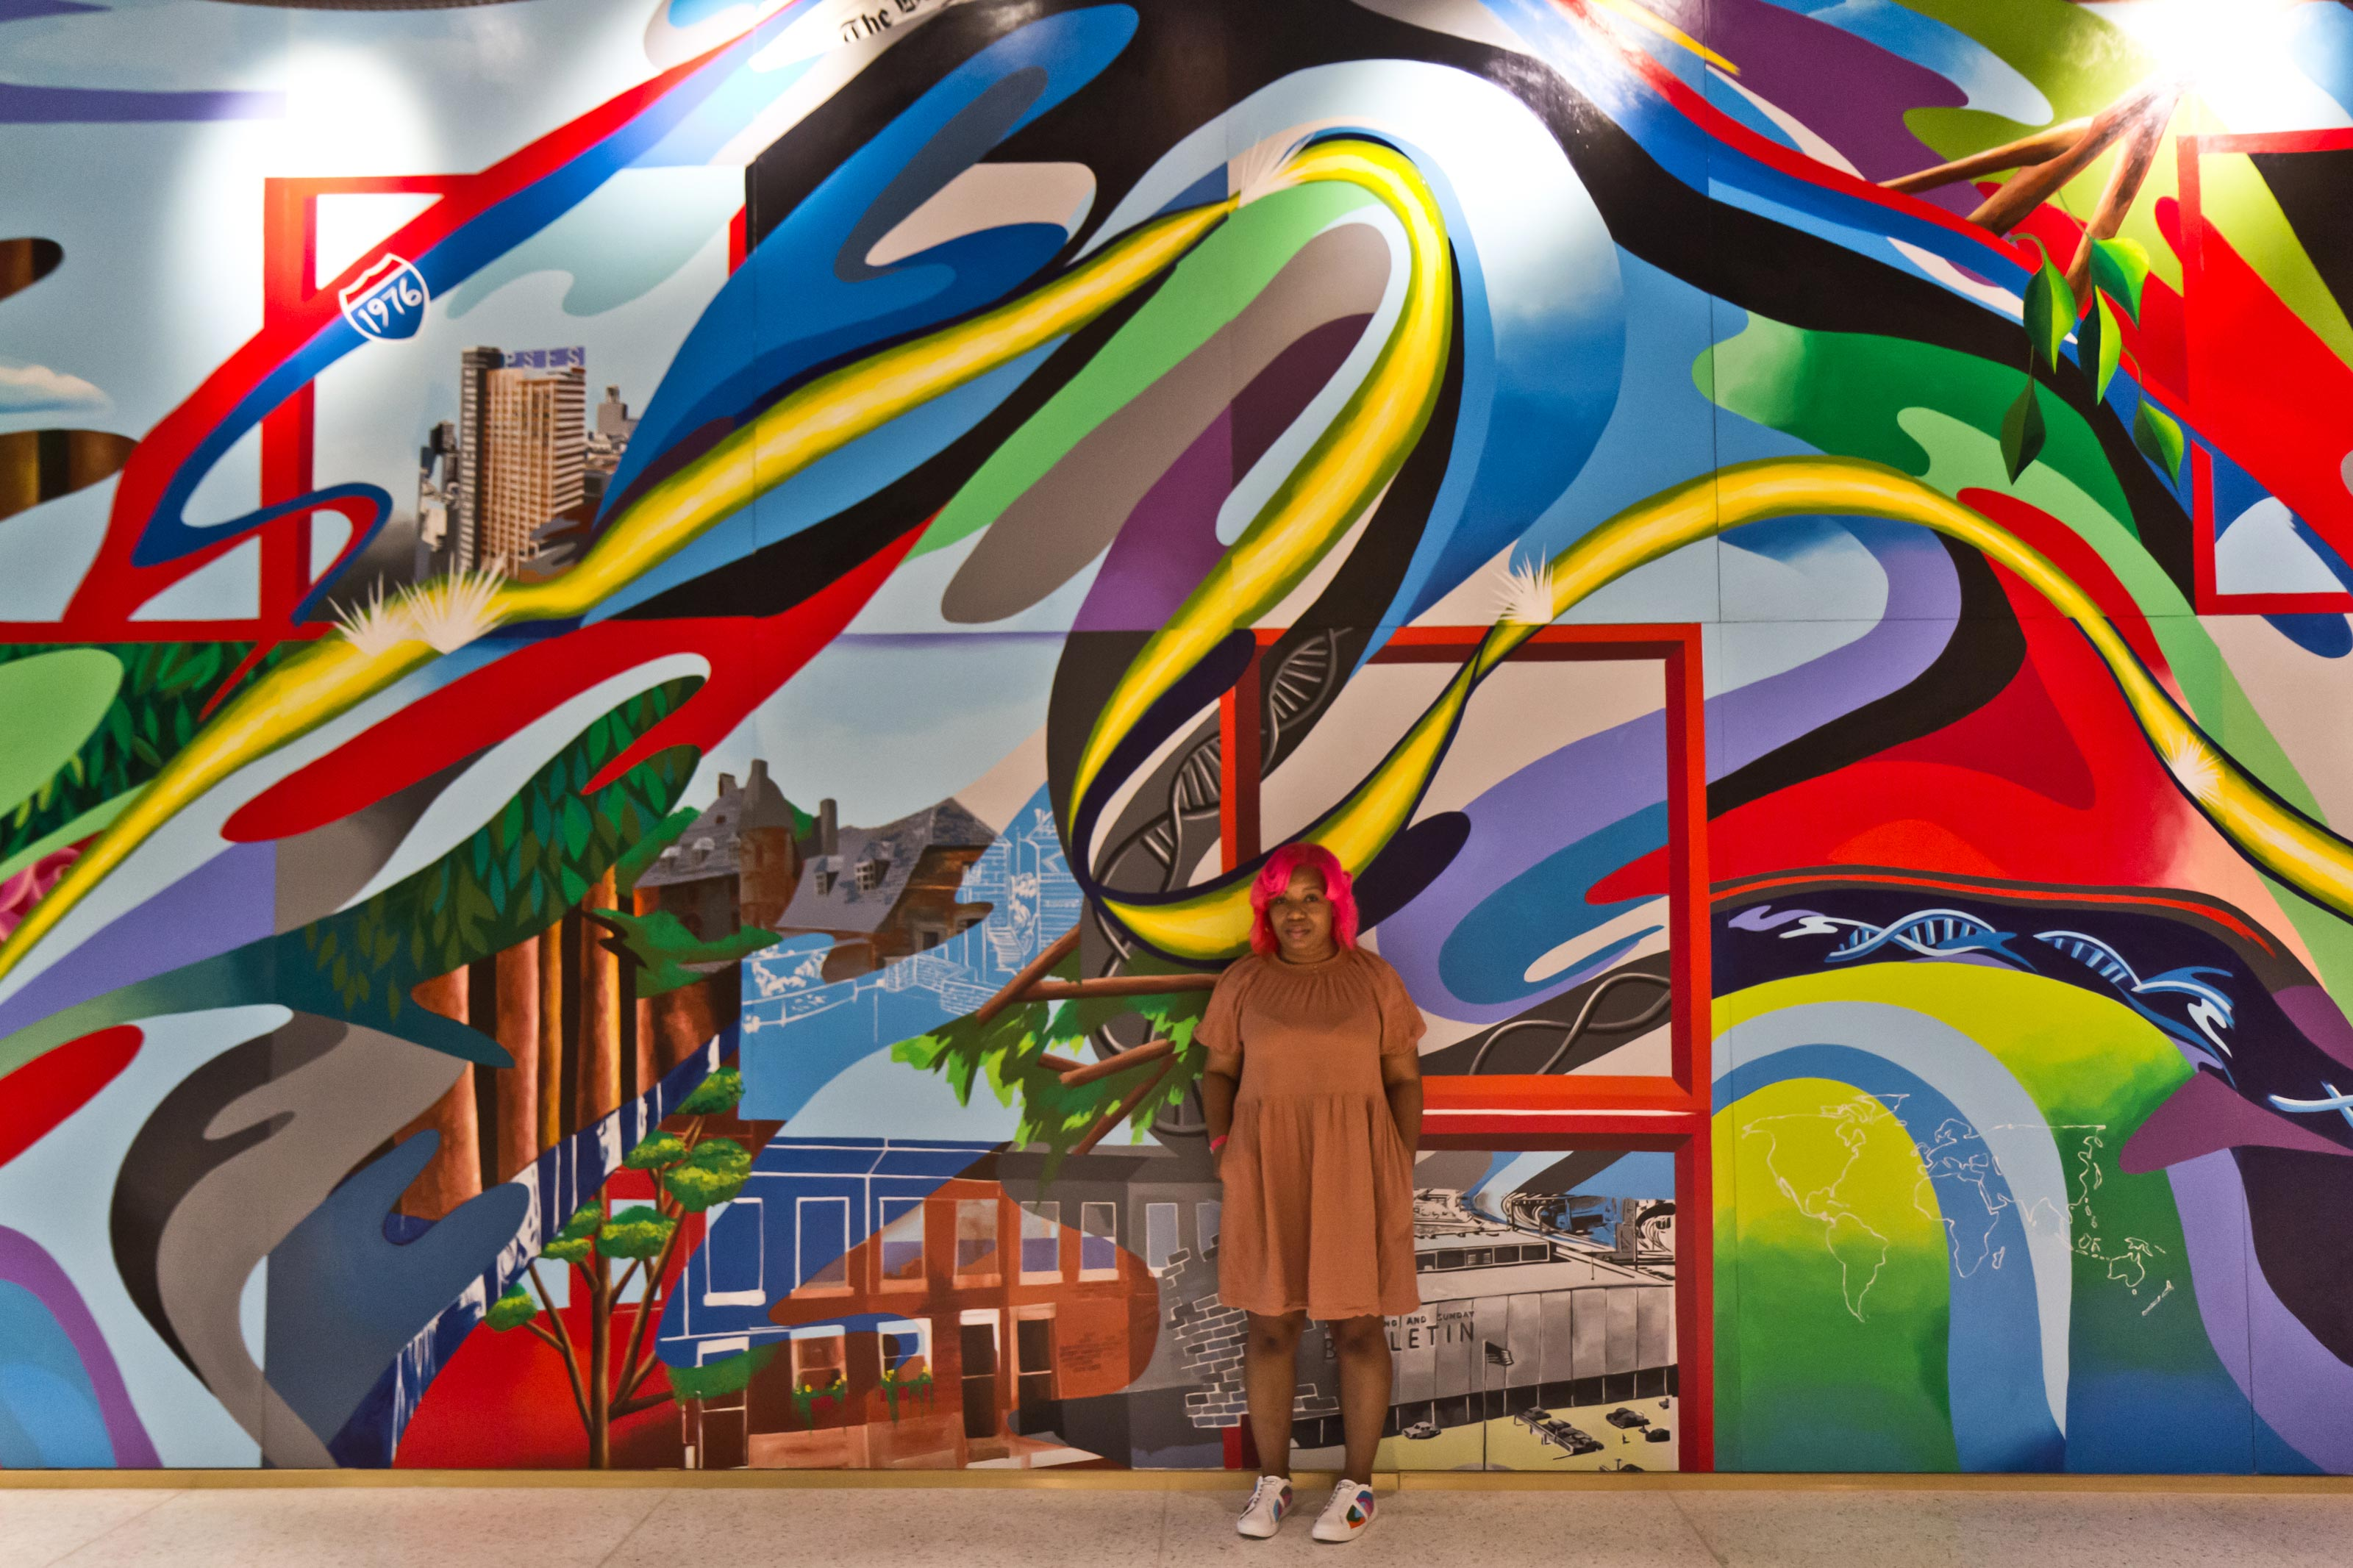 Artist Serena Saunders with her mural 'The Path' at the Bulletin Building across from 30th Street Station in Philadelphia. (Kimberly Paynter/WHYY)